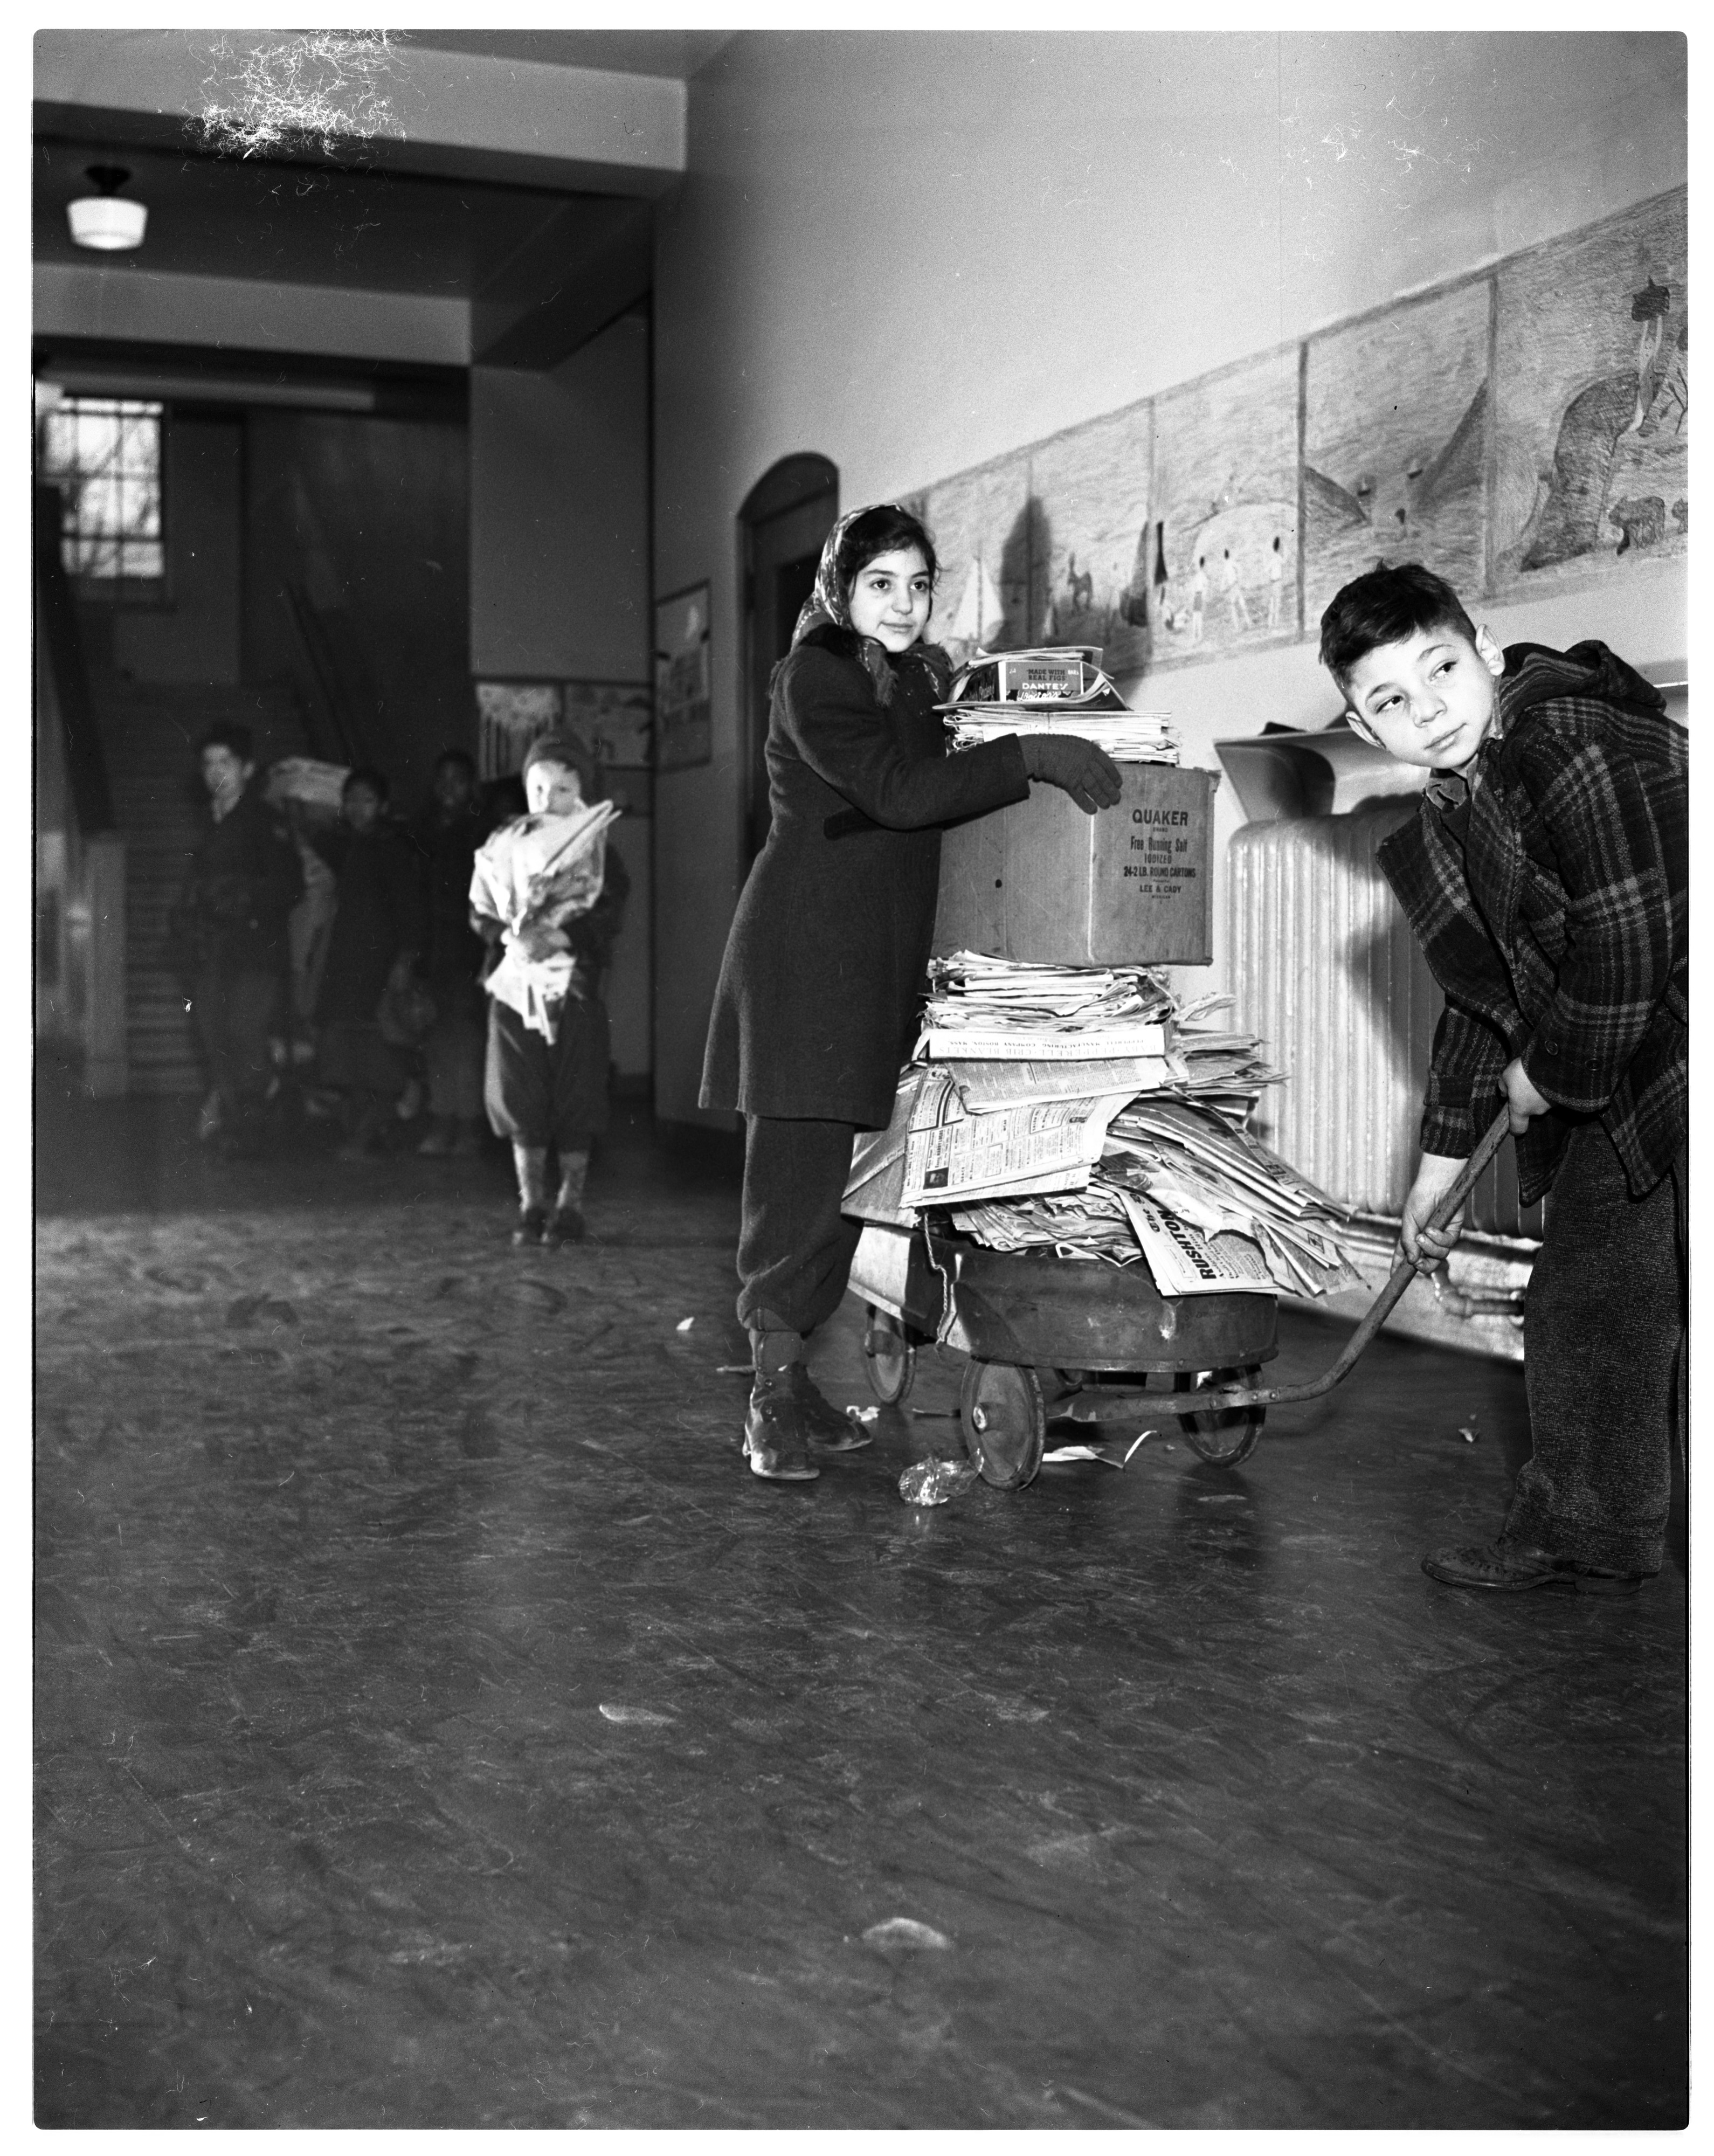 Children with wagons and piles of paper